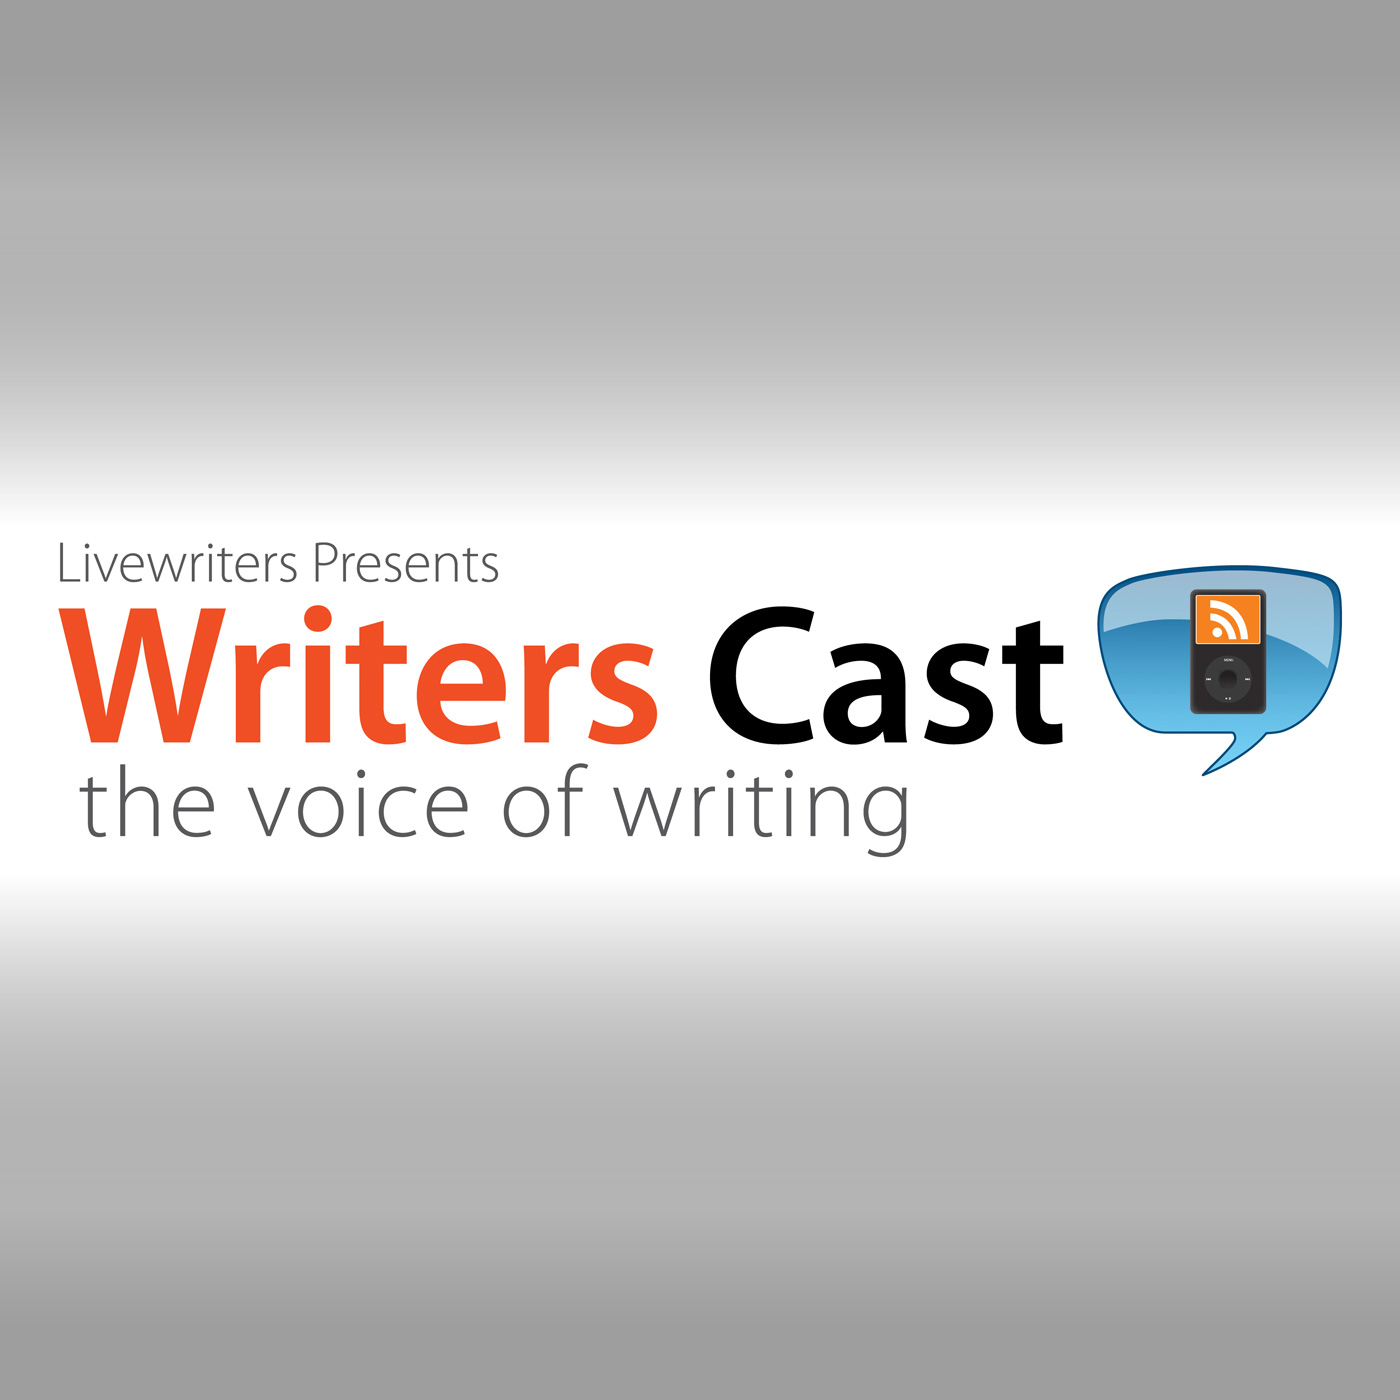 WritersCast